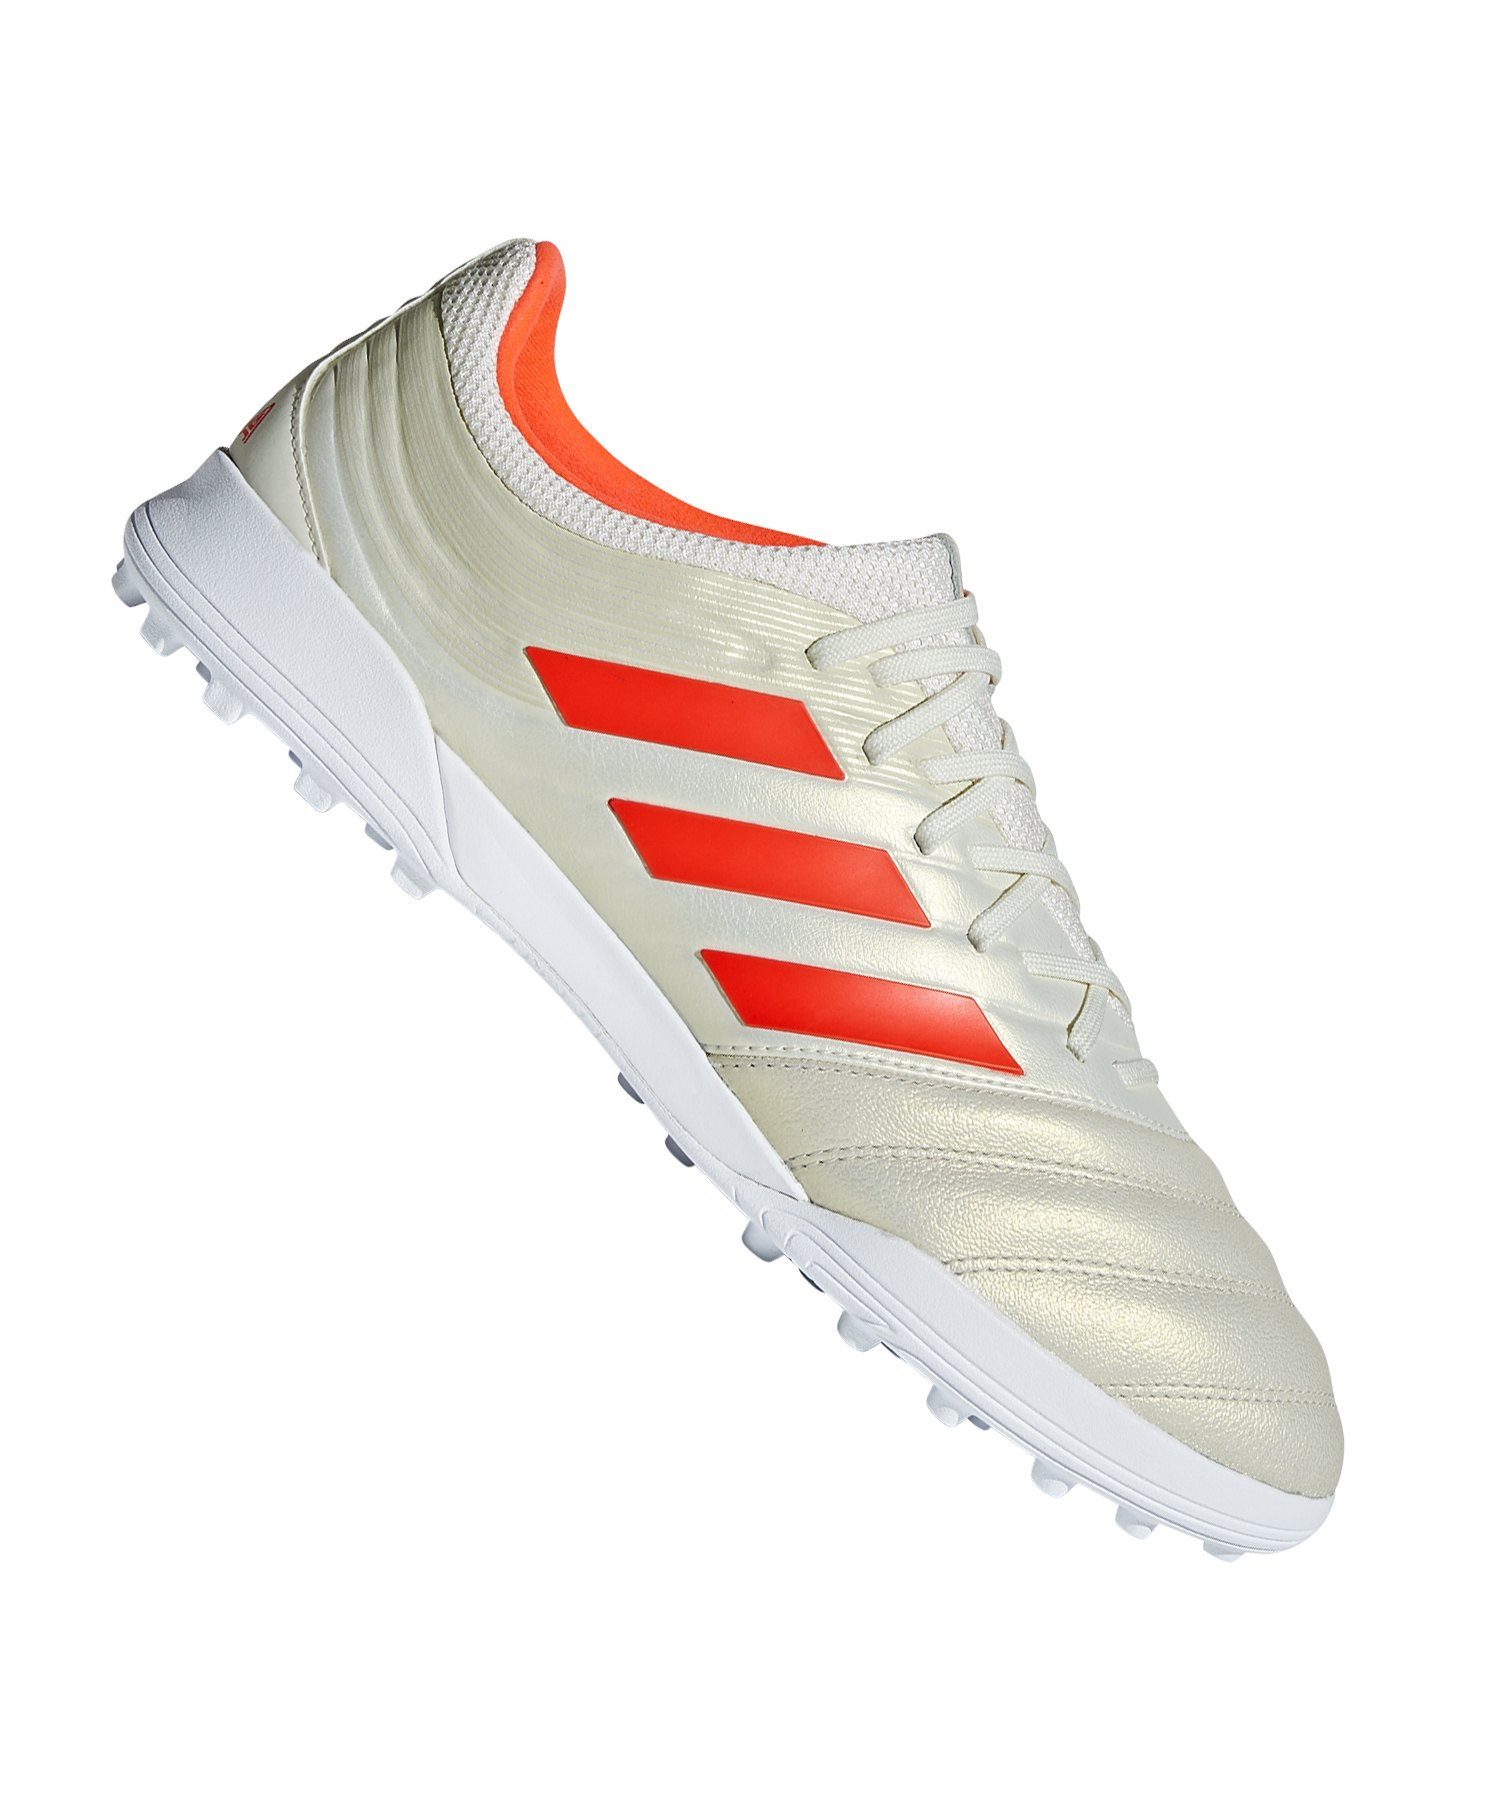 adidas COPA 19.3 TF Weiss Rot - weiss